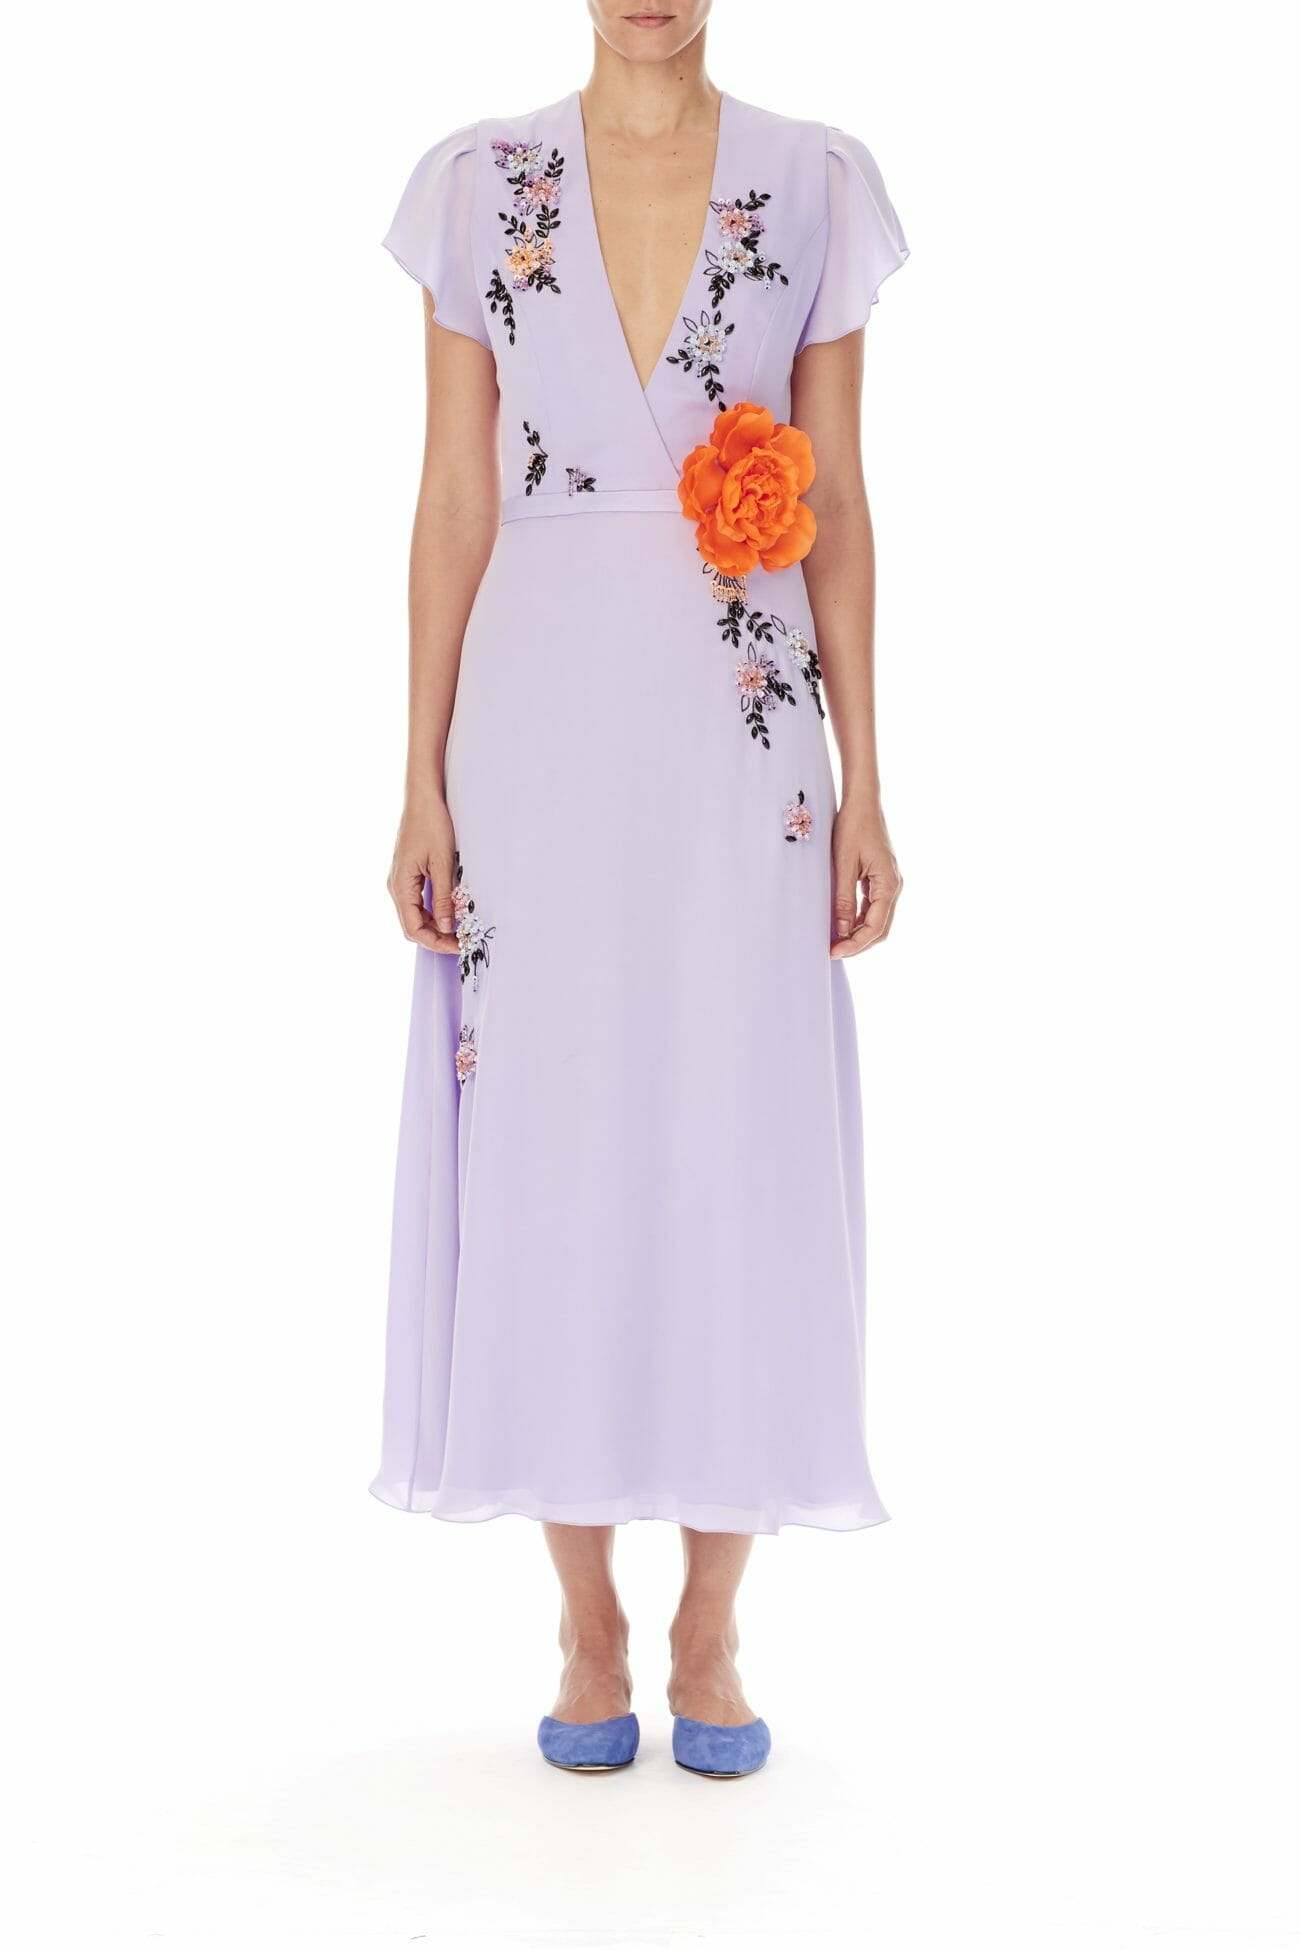 Carolina-Herrera-New-York-Resort-2019-look-16